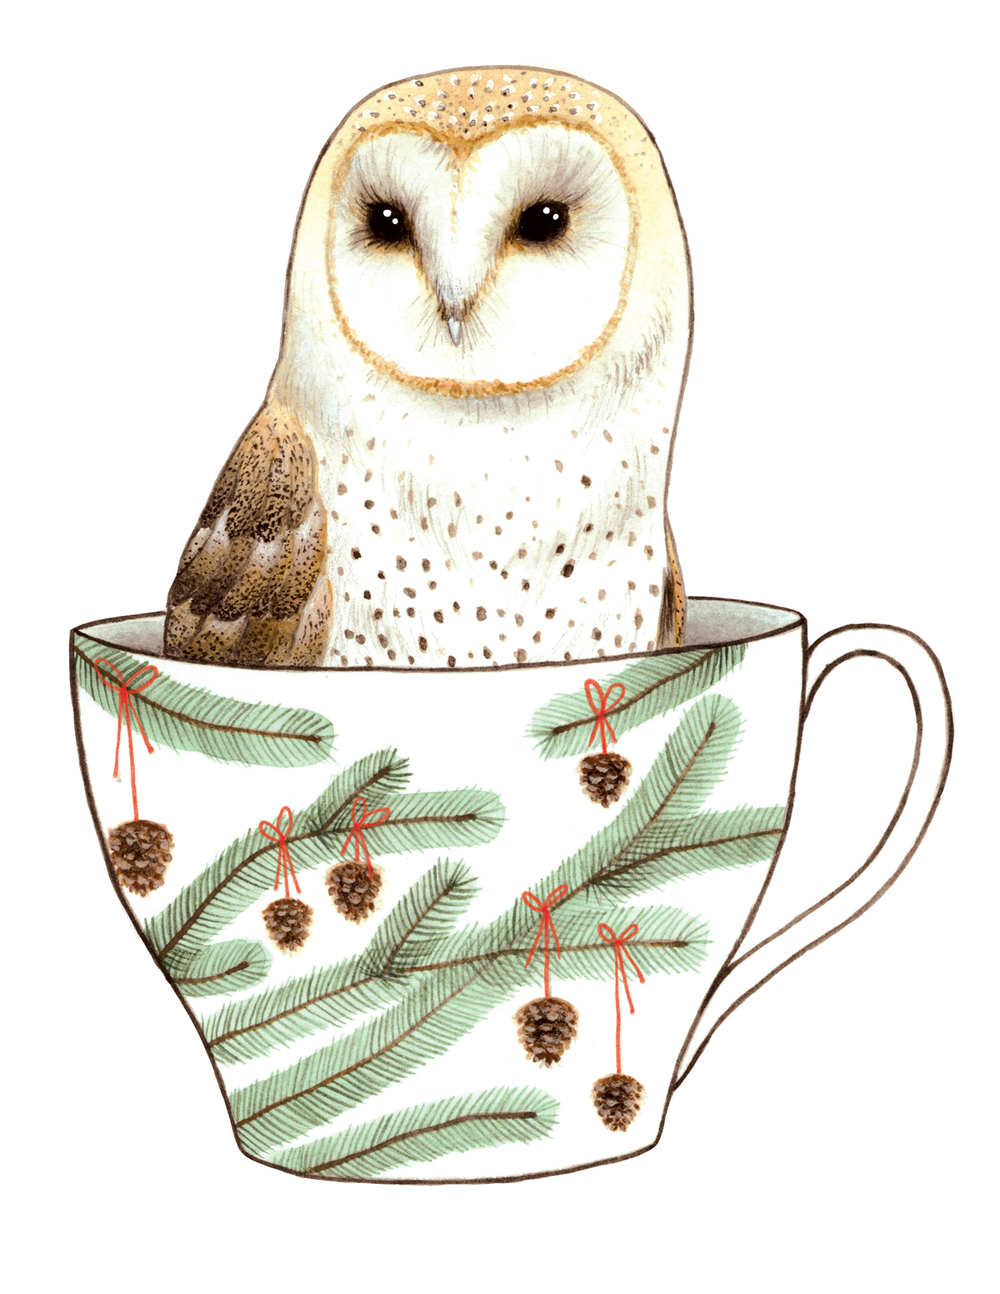 Barn Owl in a Teacup II